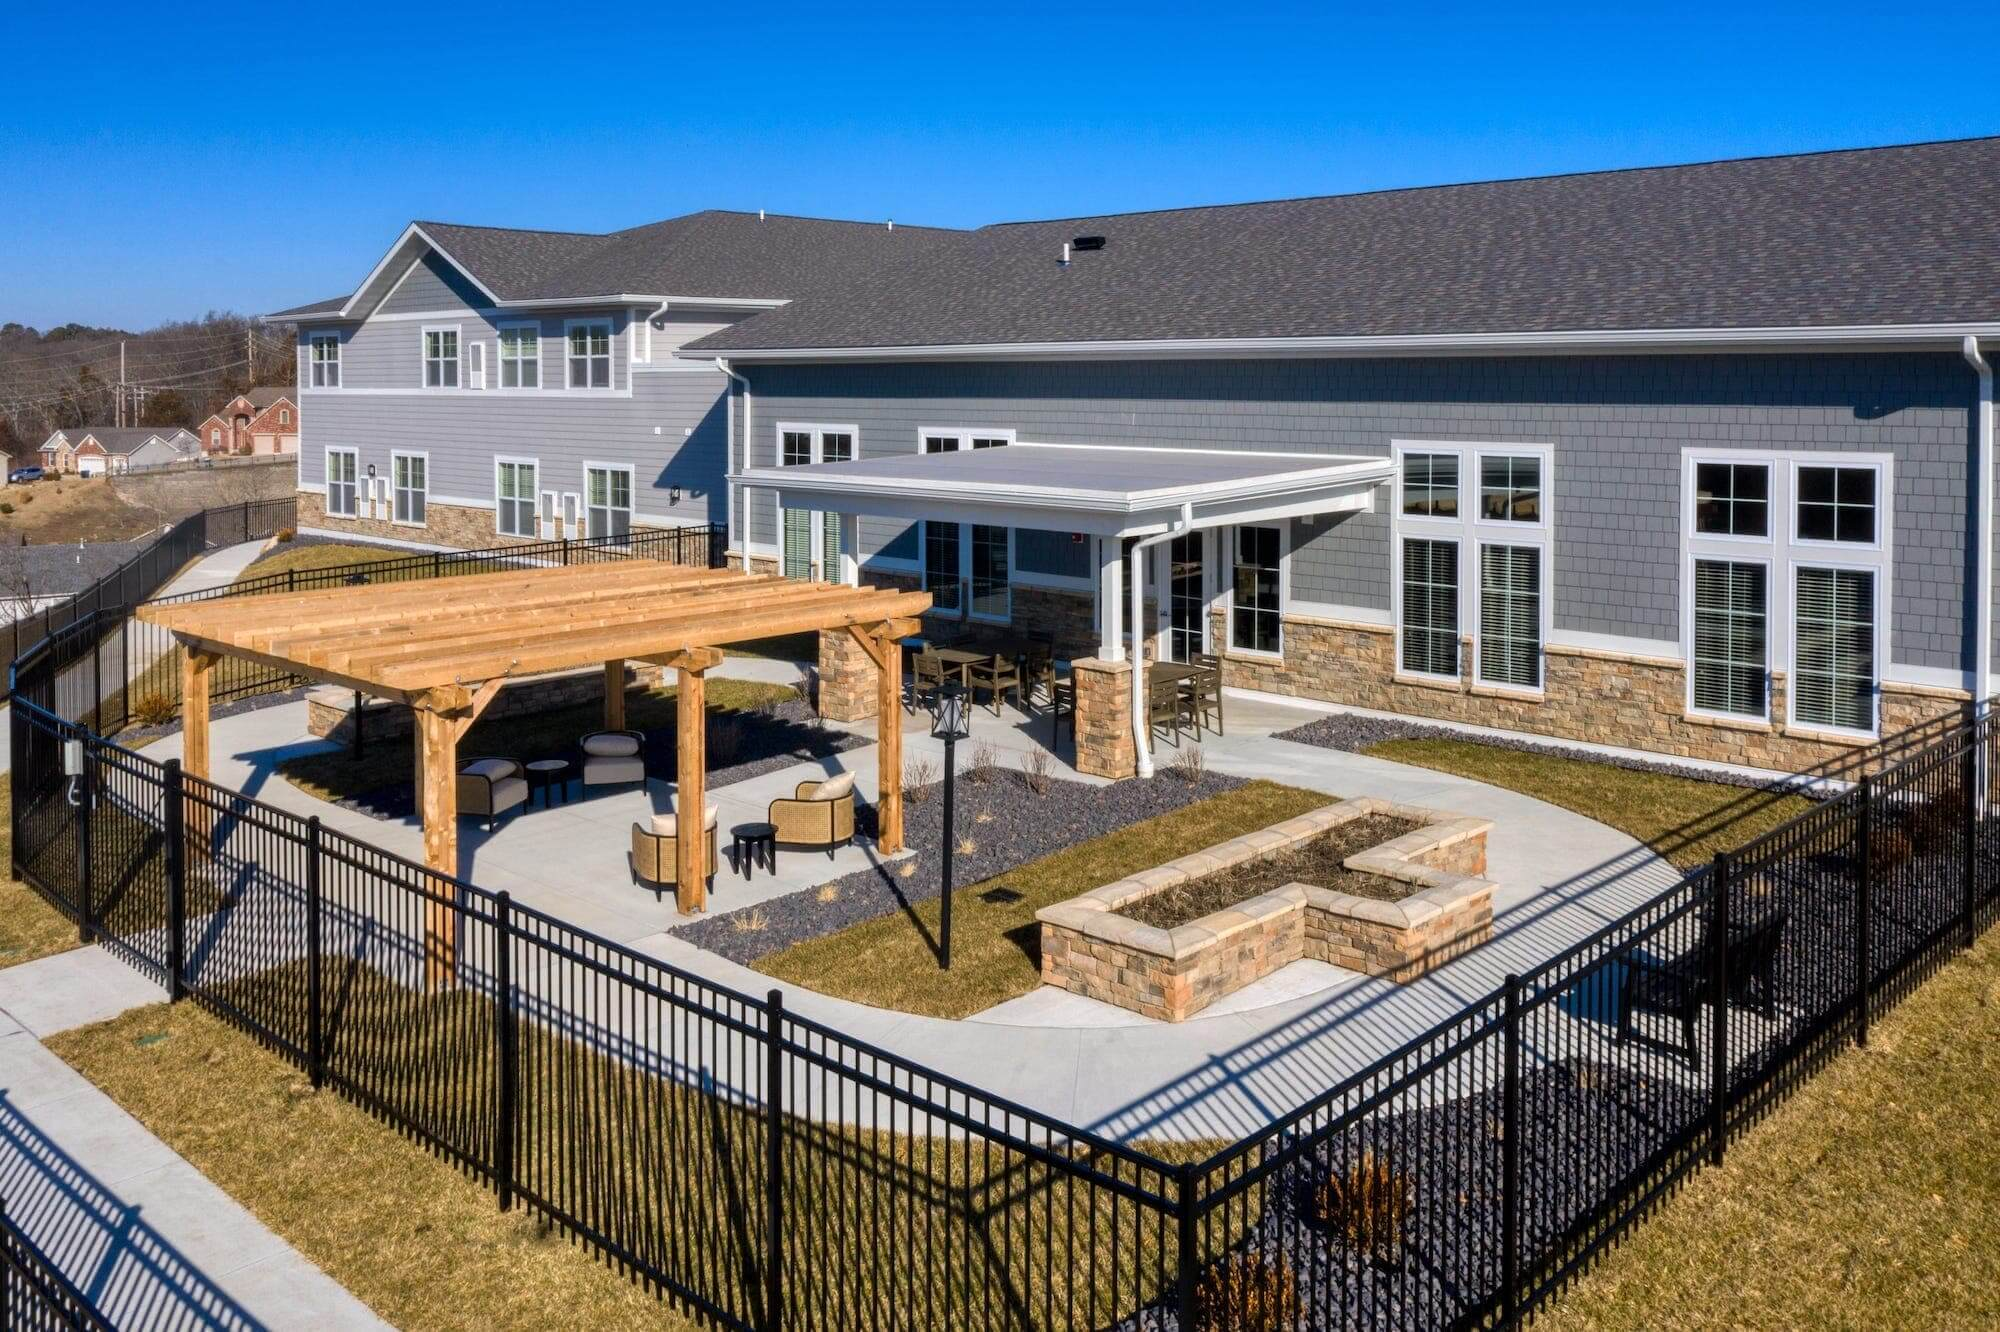 Gated outdoor community gathering area with comfortable seating and paved walkways